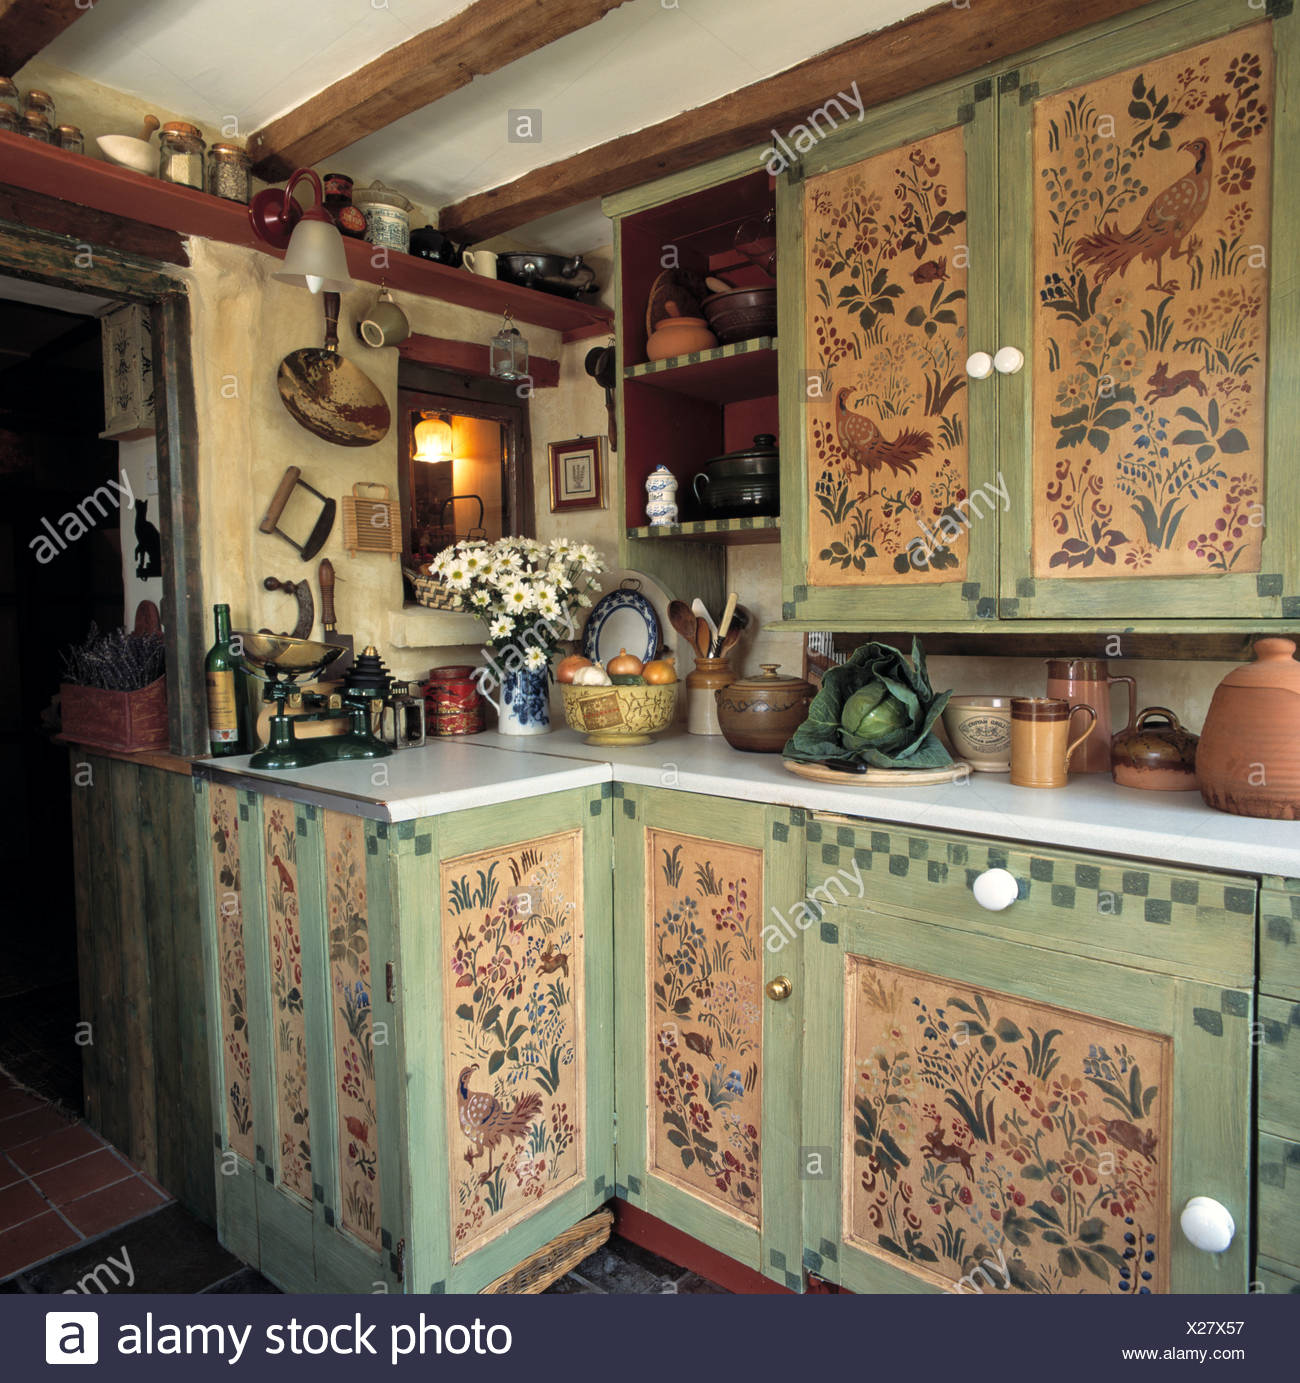 Handpainted Flowers And Birds On Cupboard Doors Of Small Cottage Kitchen Stock Photo Alamy